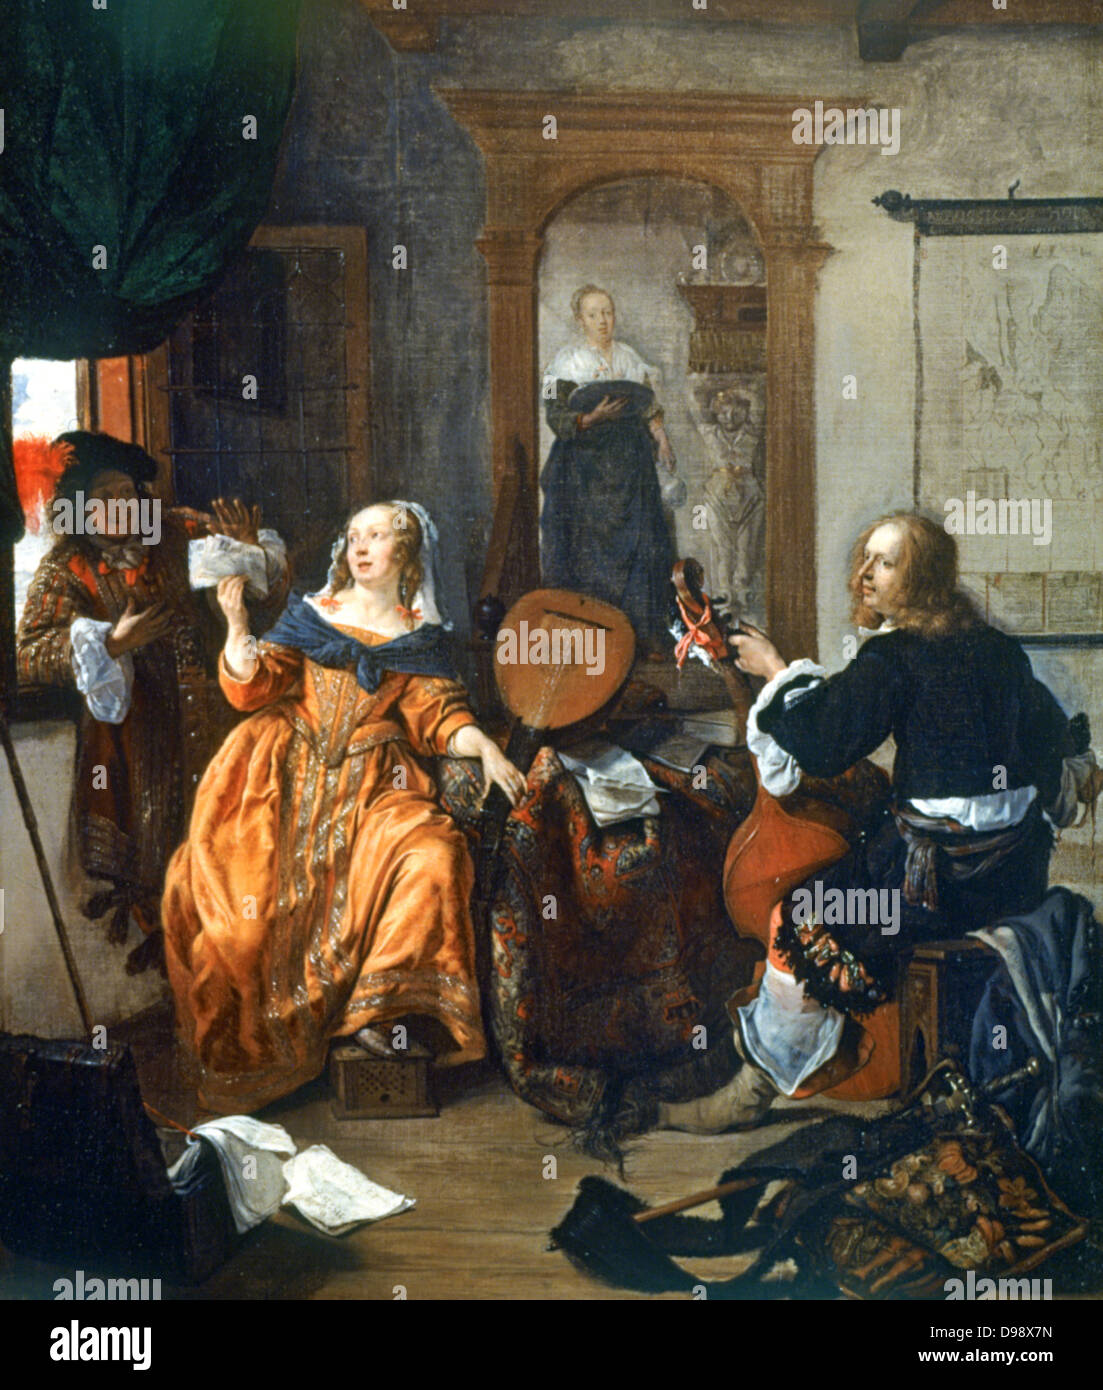 Gabriel Metsu (1629-1667) Dutch painter. Dutch interior with woman with  lute showing music to man on